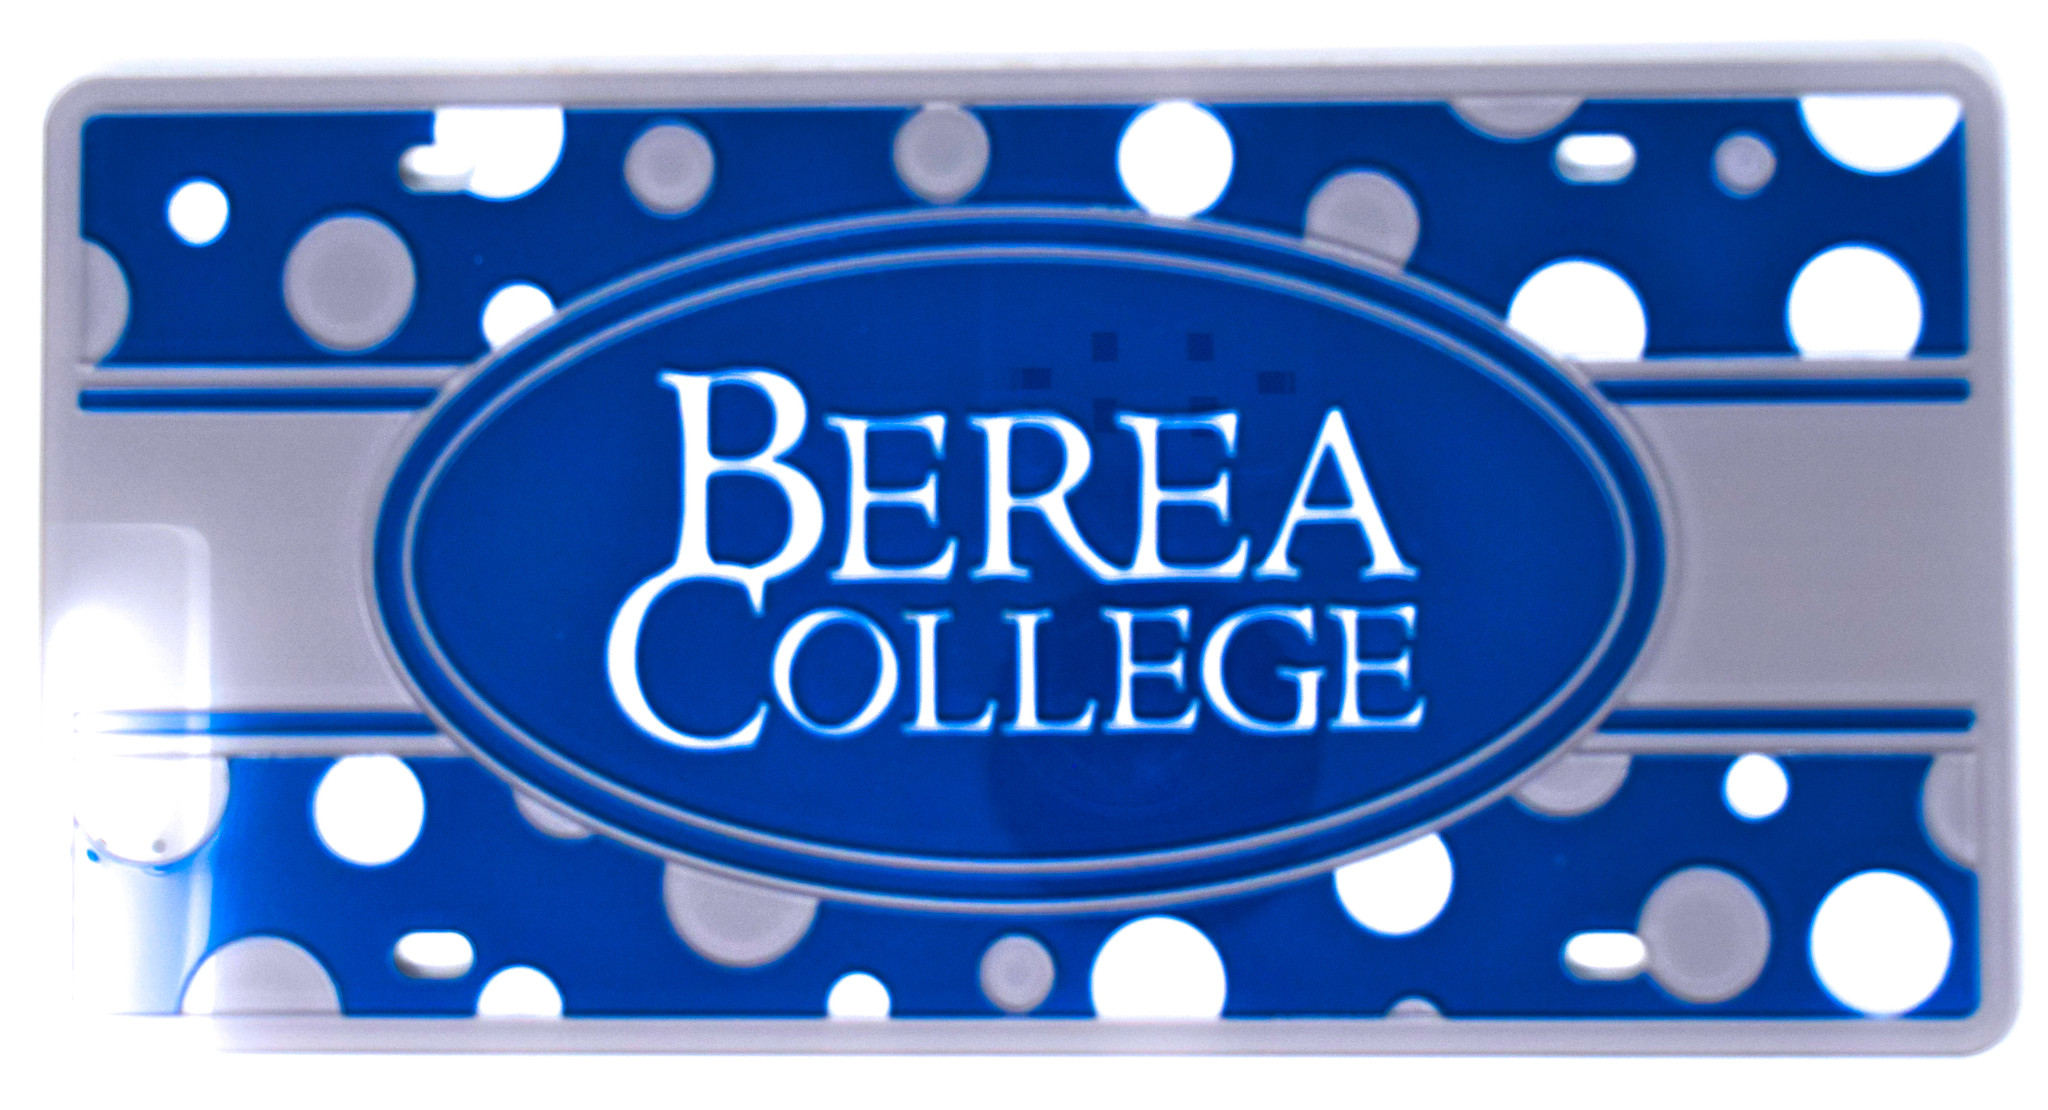 Berea College Polka Dot License Plate-1